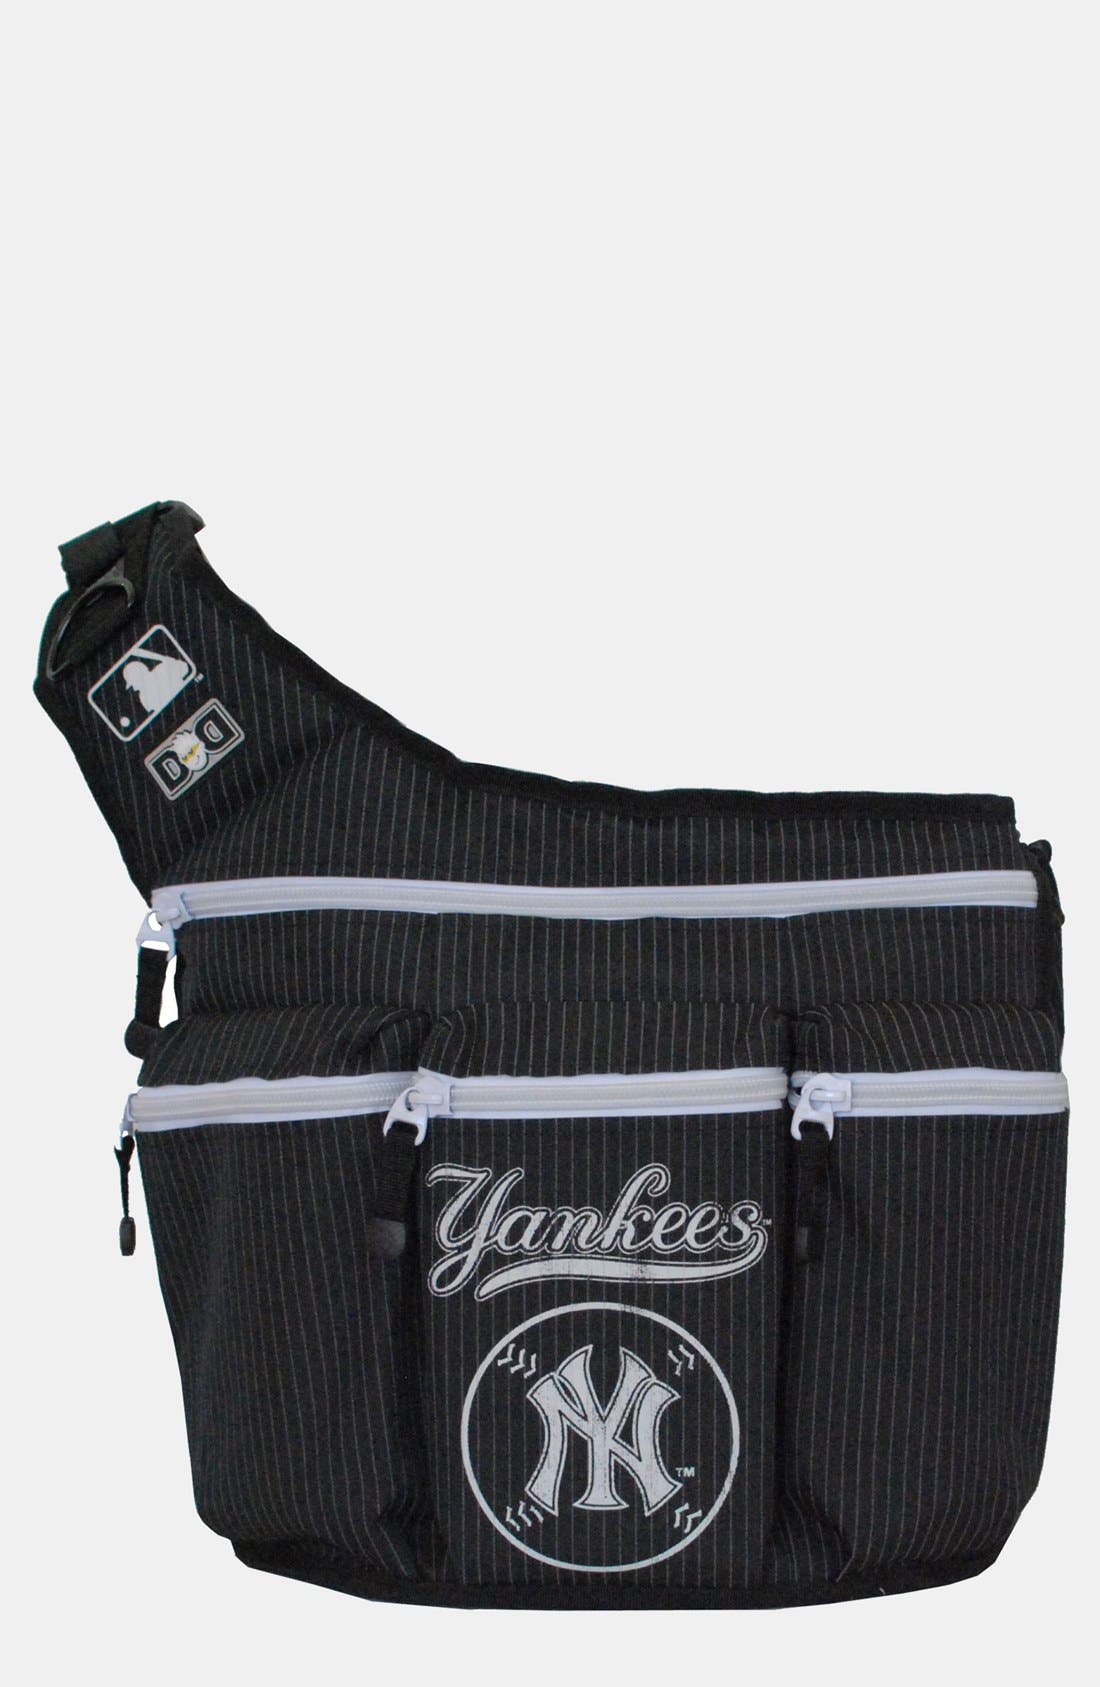 Main Image - Diaper Dude 'New York Yankees' Messenger Diaper Bag